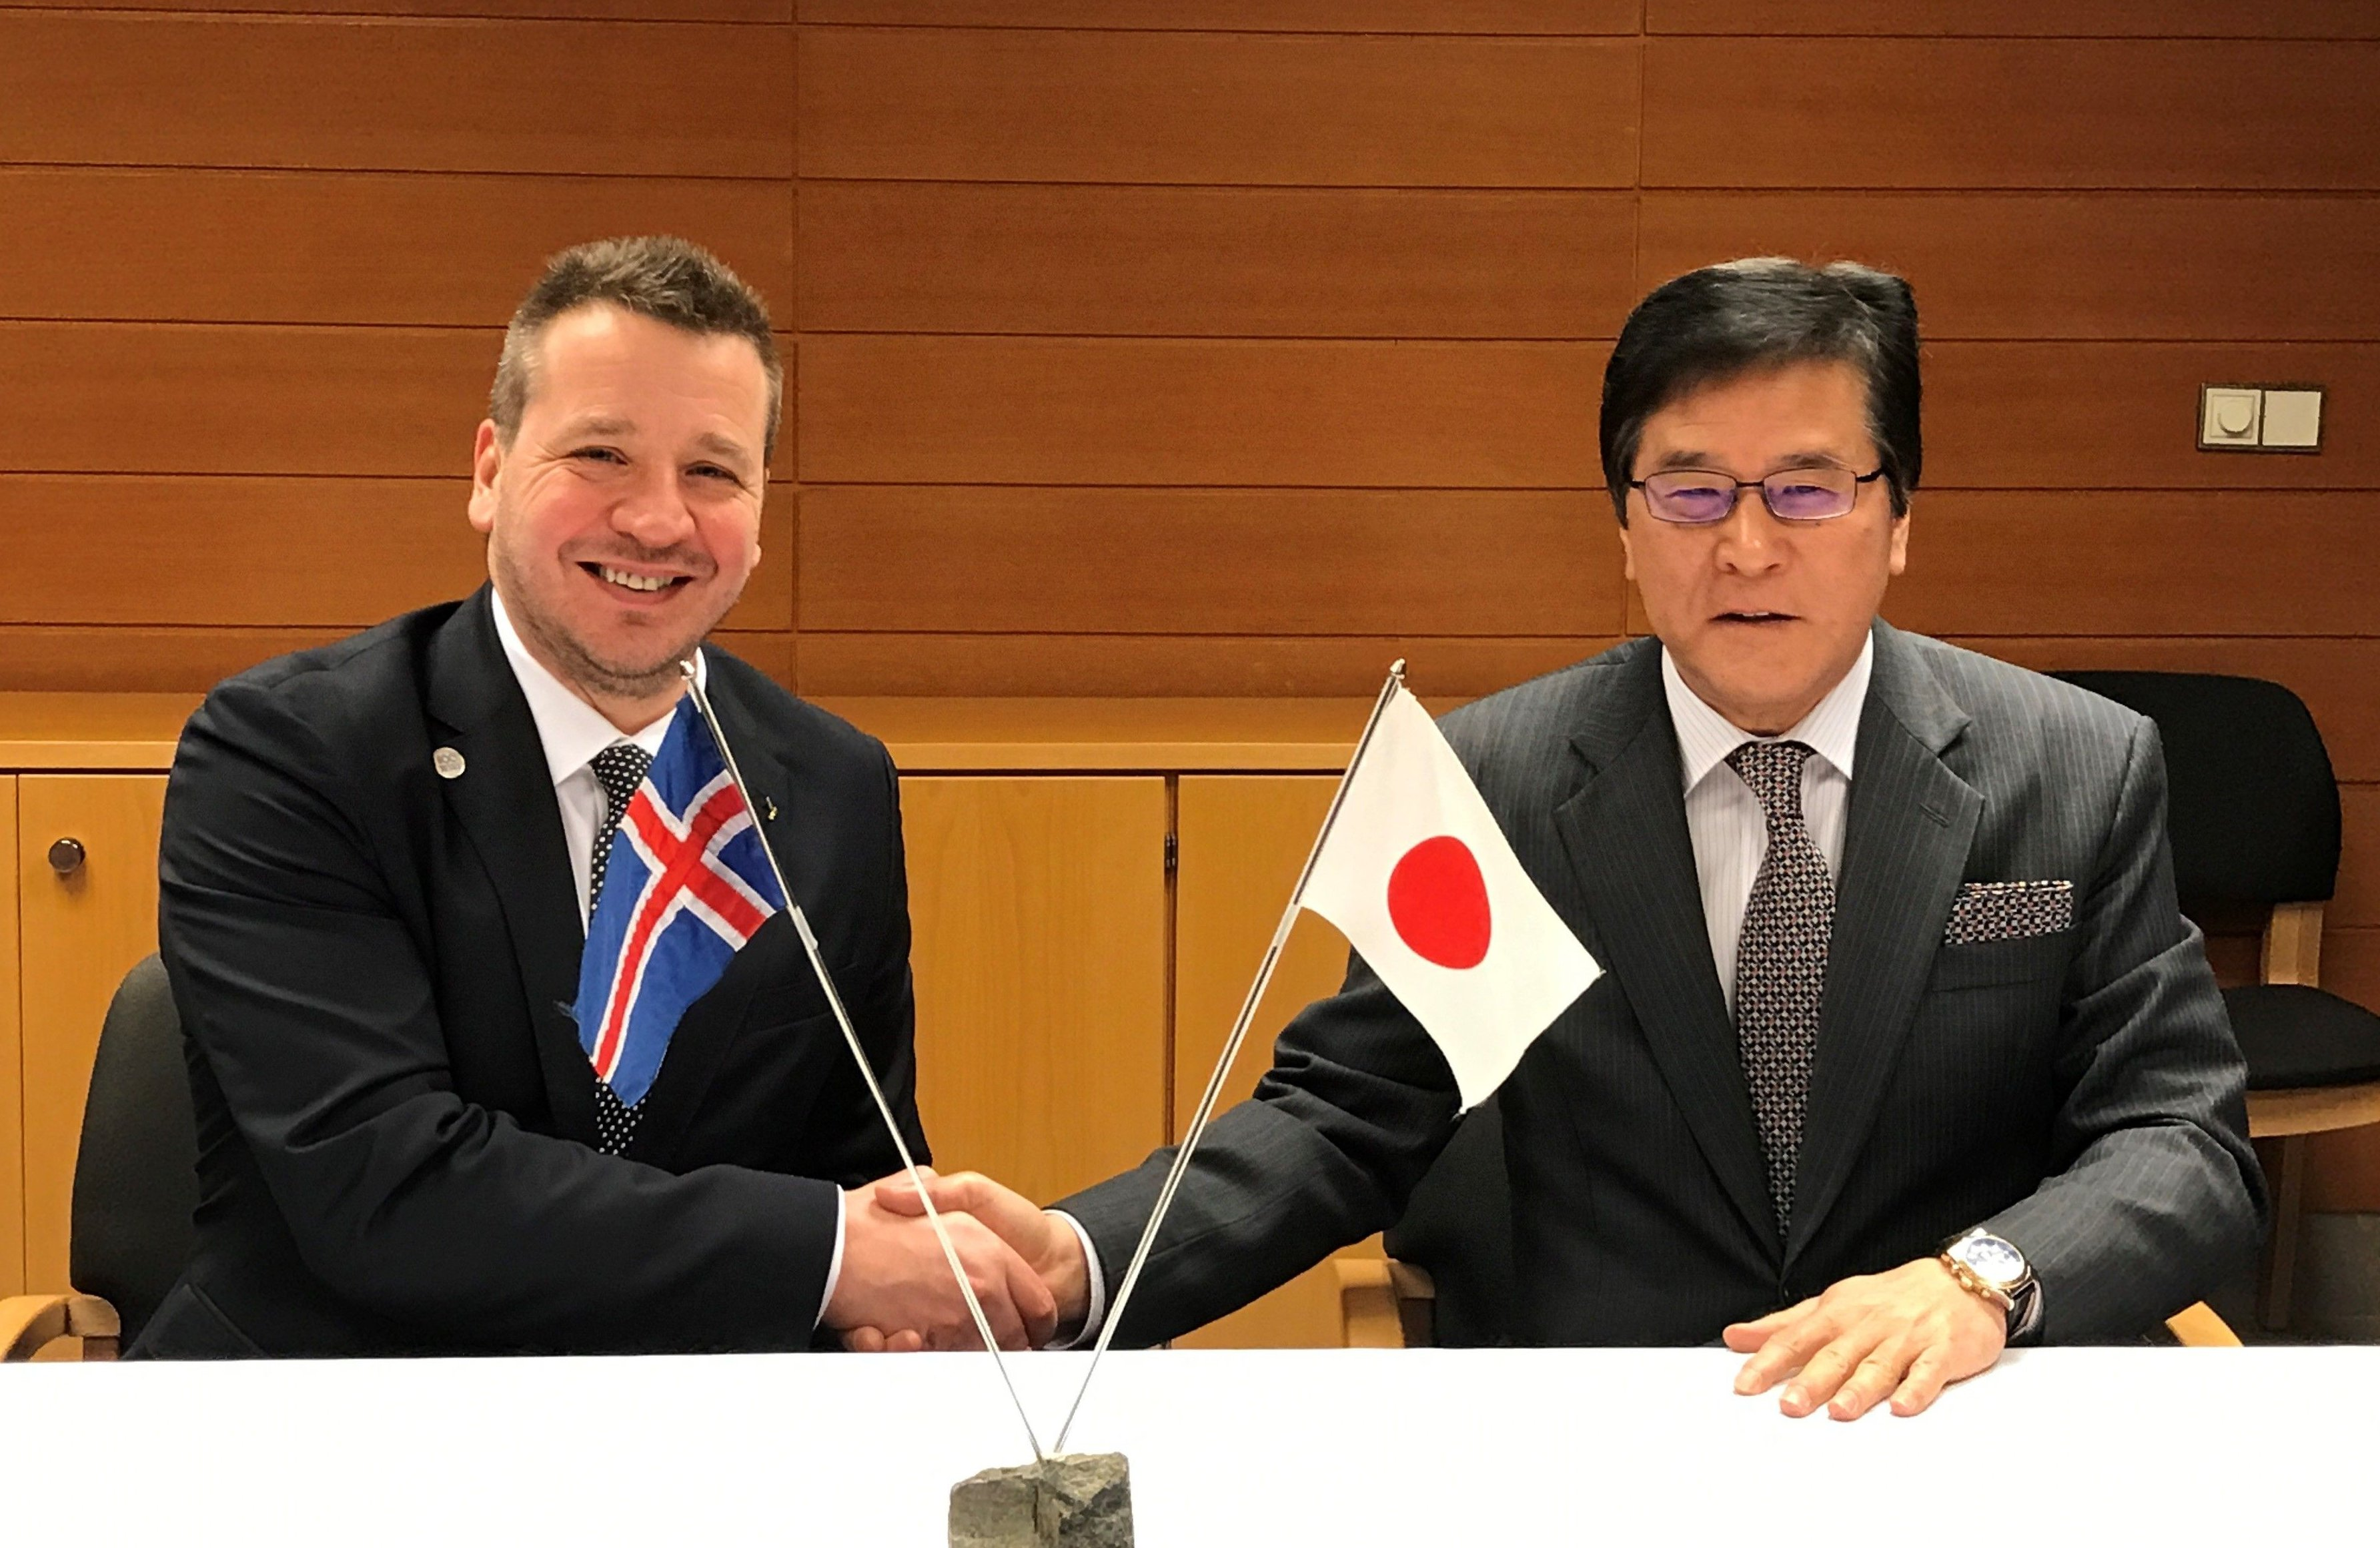 Mr. Guðlaugur Þór Þórðarson, Minister for Foreign Affairs of Iceland and H. E. Mr. Yasuhiko Kitagawa, Ambassador of Japan to the Republic of Iceland - mynd